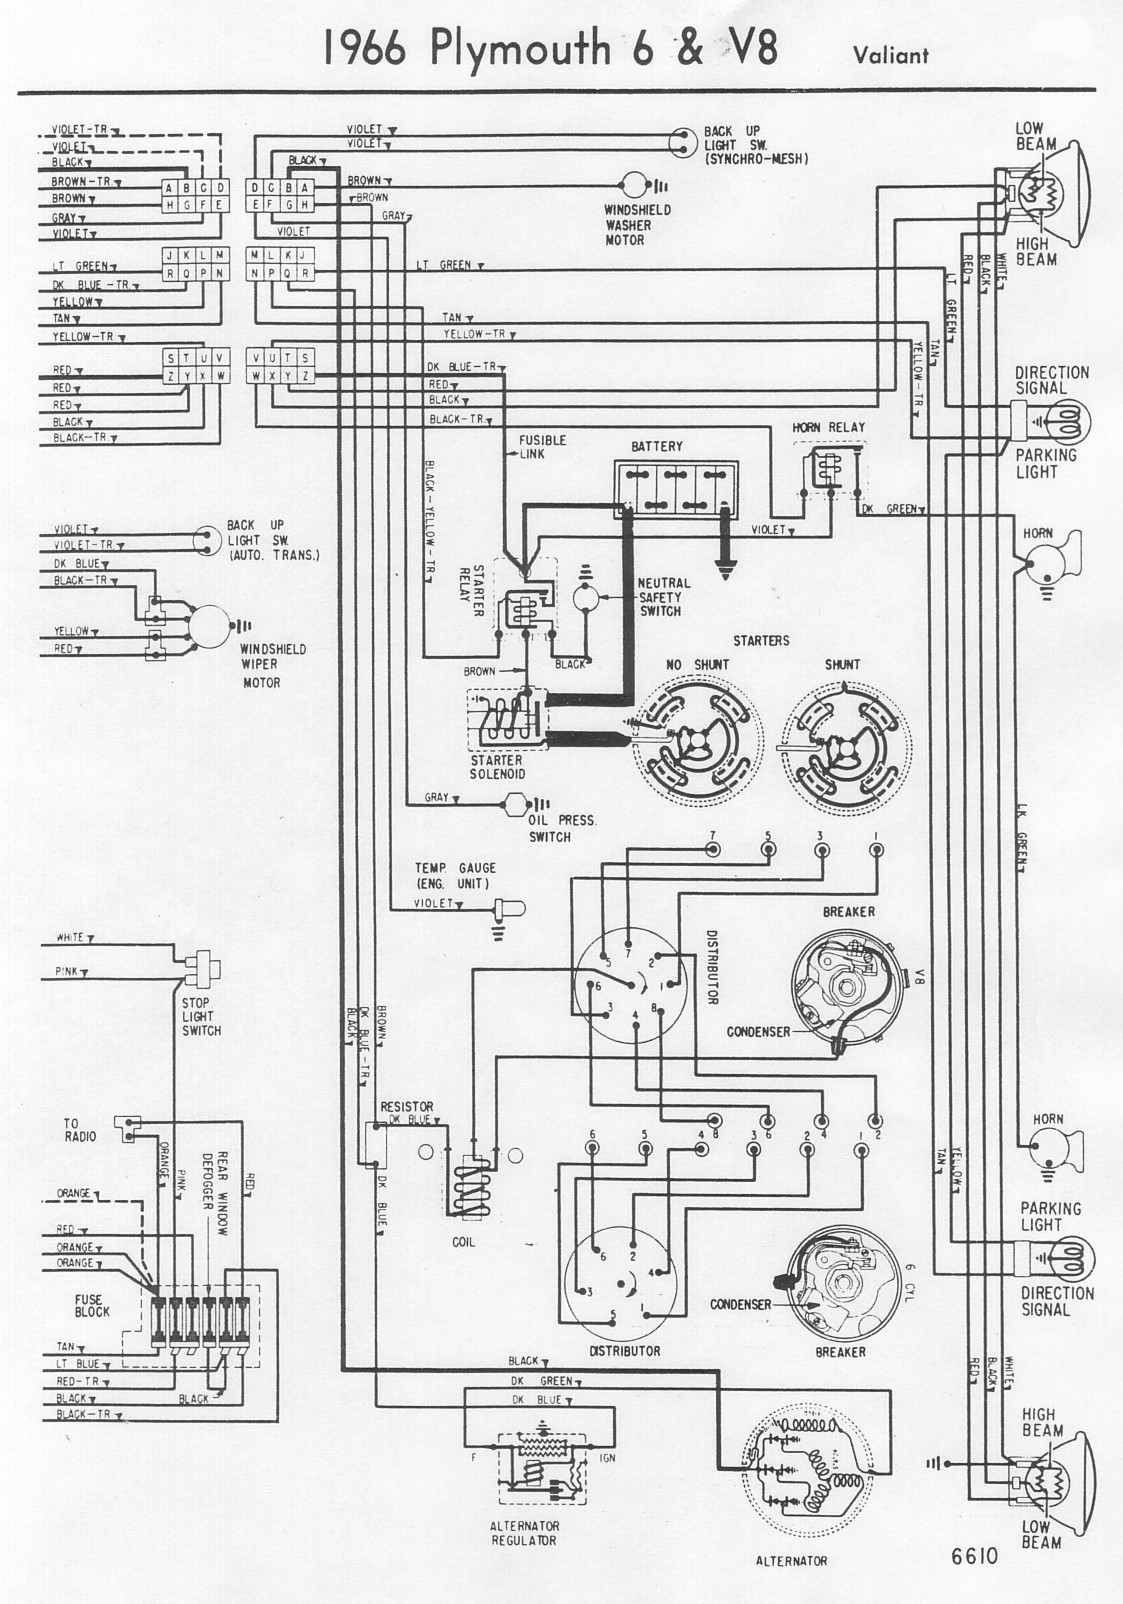 1964 Impala Alternator Wiring Detailed Schematic Diagrams Gm Fuse Box Diagram Trusted Horn Relay